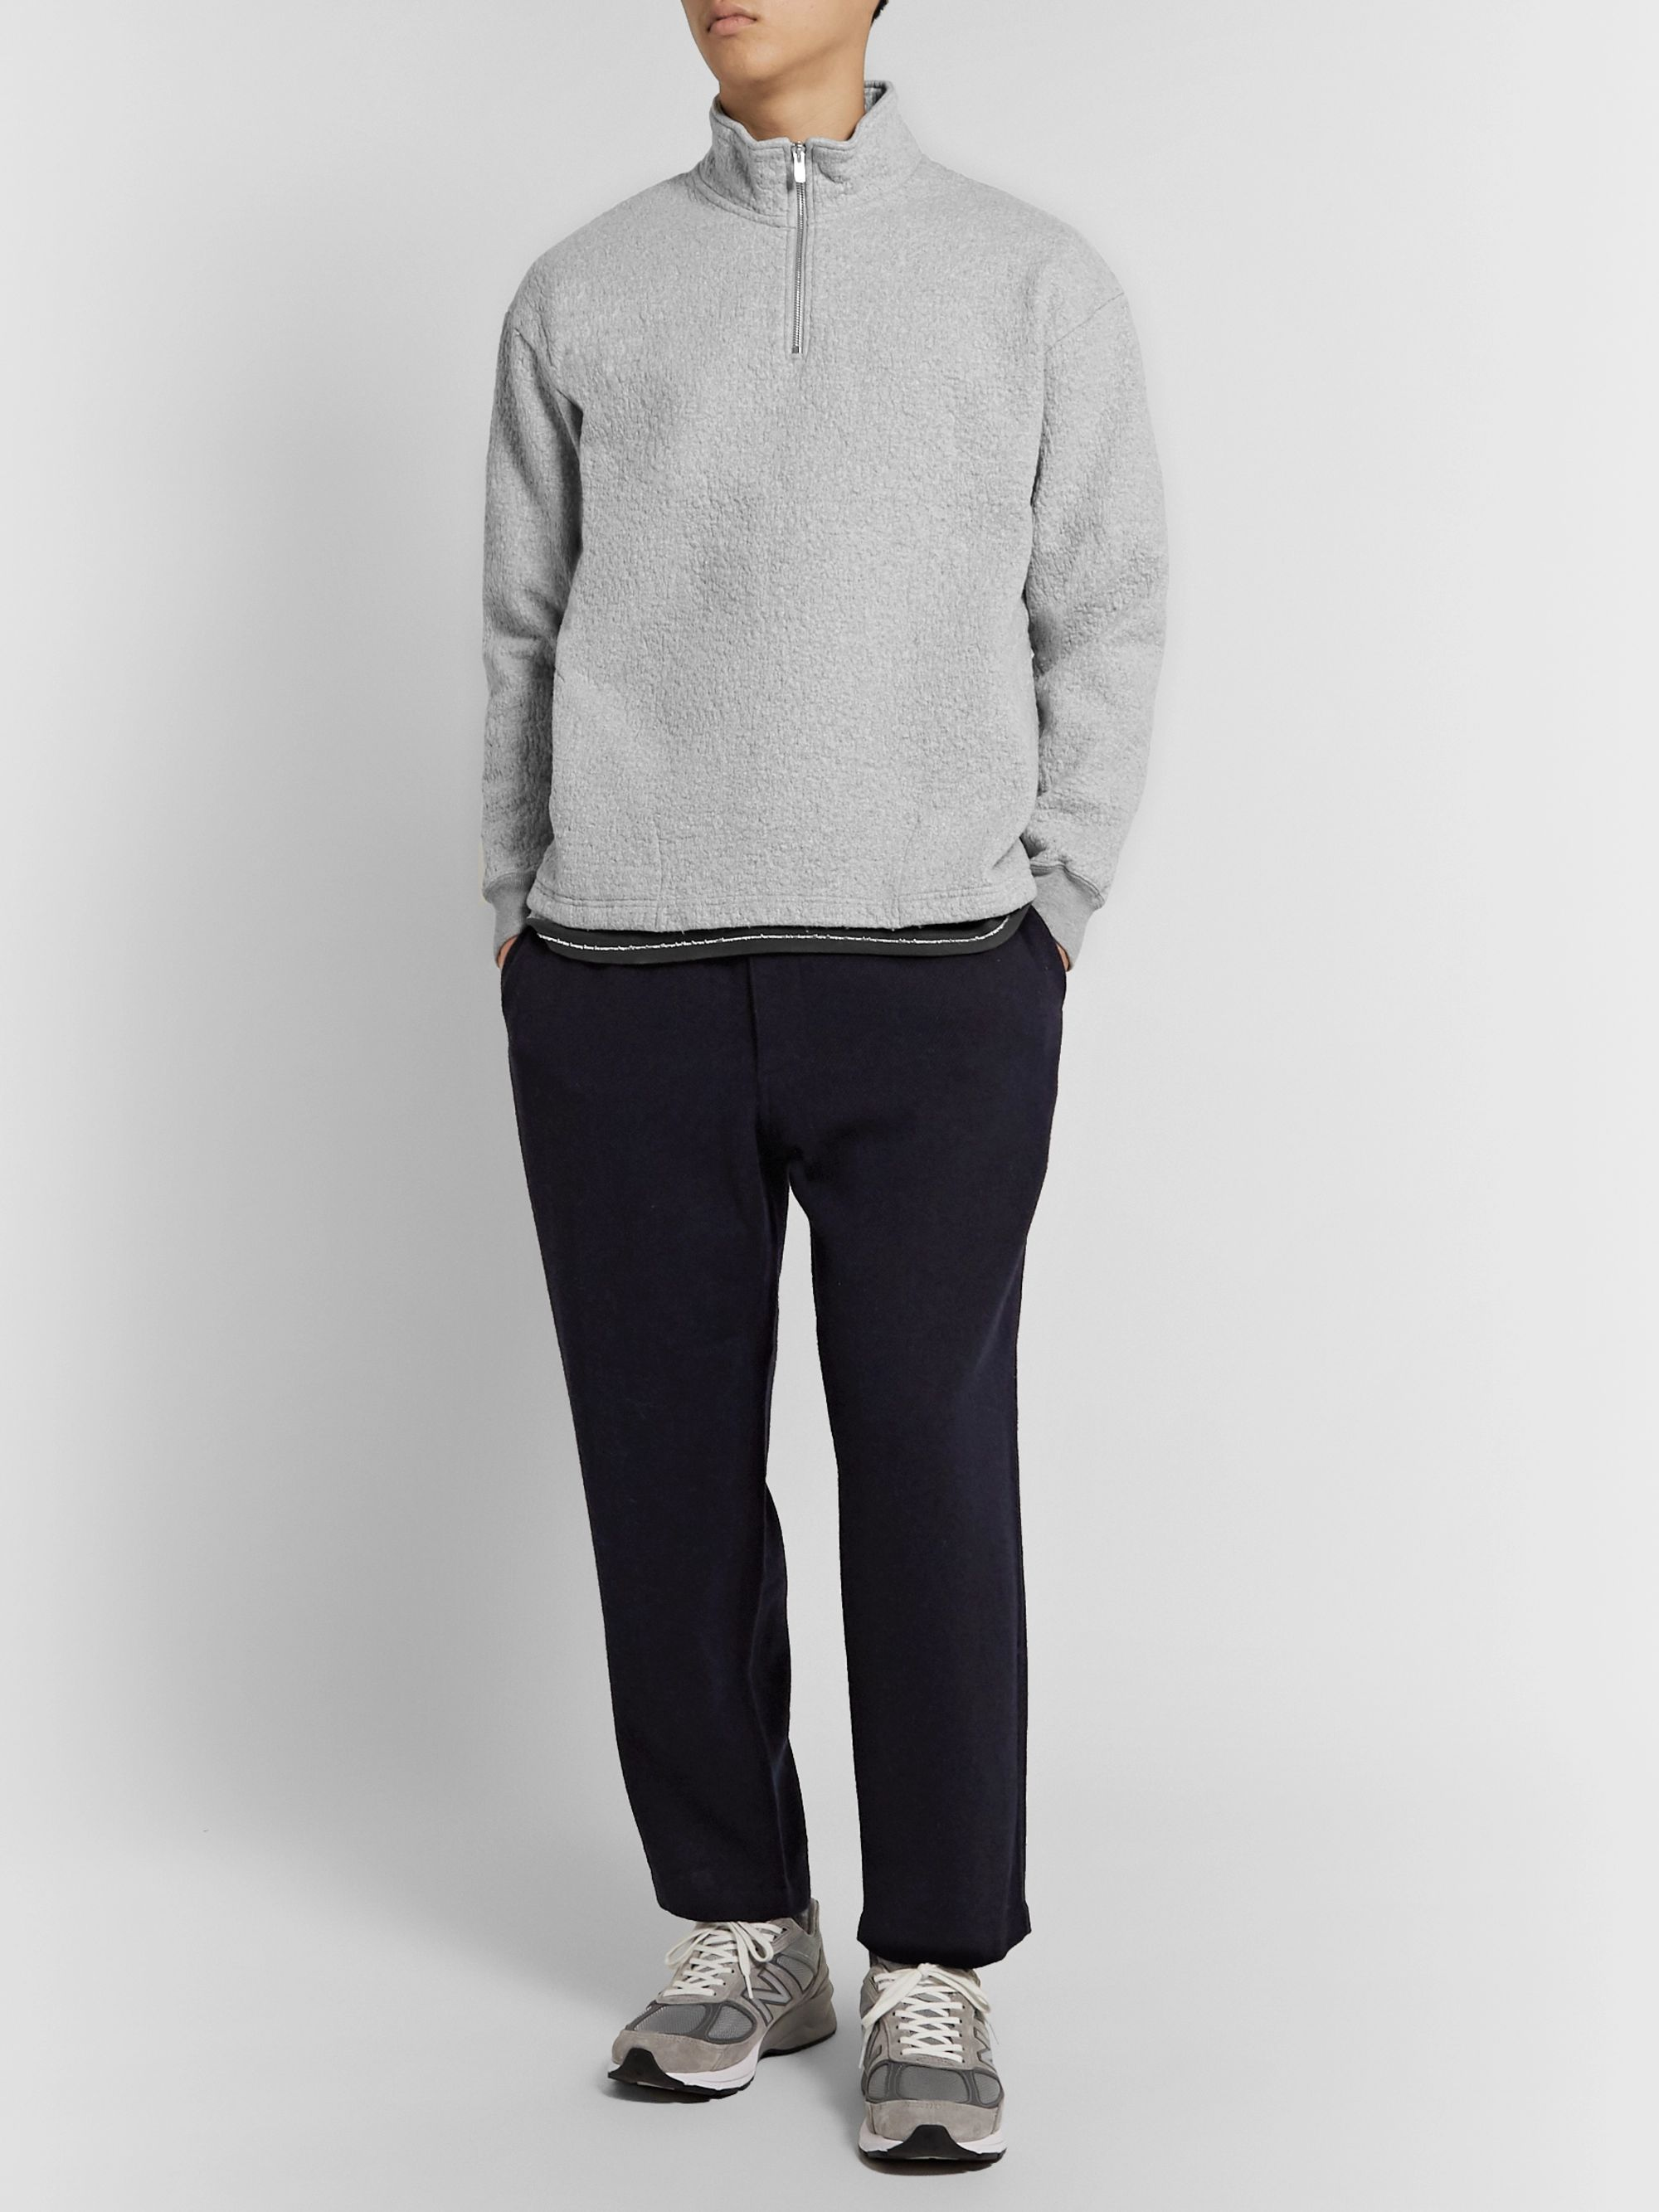 Pilgrim Surf + Supply Leon Double-Faced Crinkled Cotton and Wool-Blend Half-Zip Sweatshirt